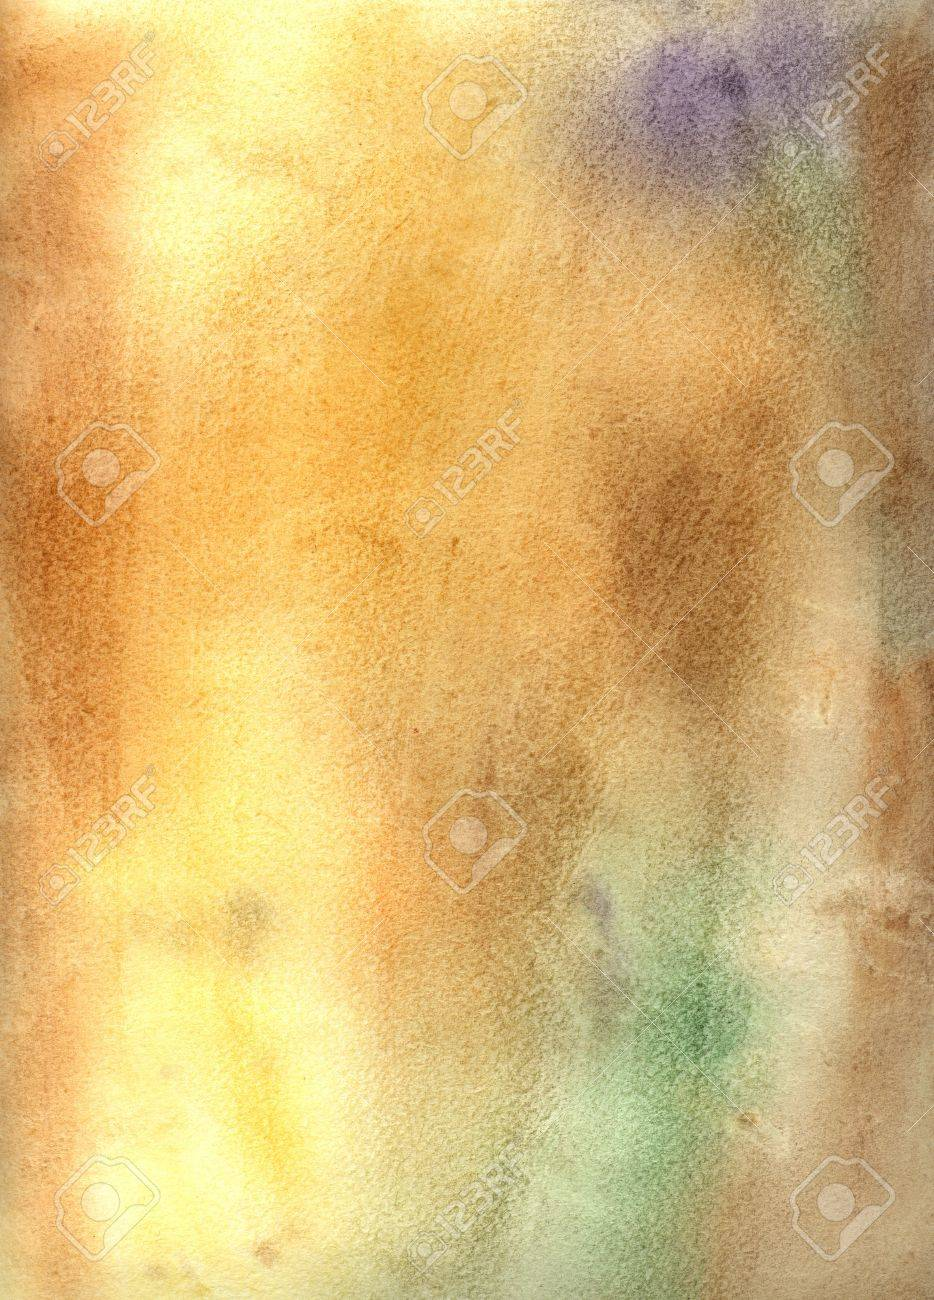 bright watercolor background with shades of brown with spots